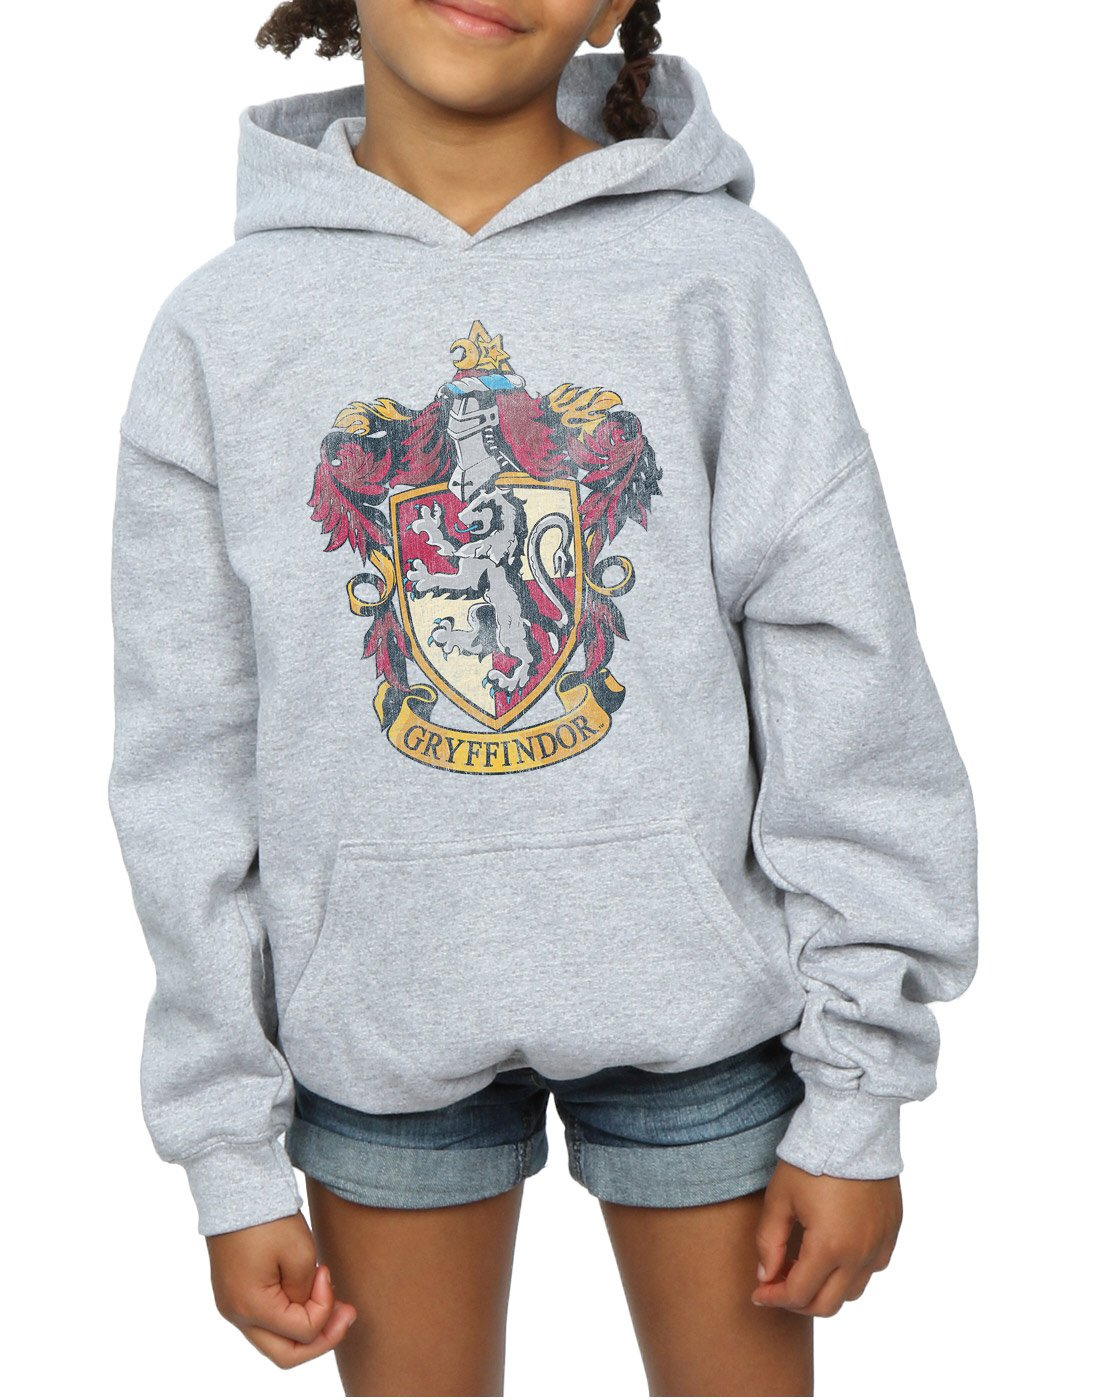 HARRY POTTER Girls Gryffindor Distressed Crest Hoodie 9-11 Years Sport Grey by HARRY POTTER (Image #4)